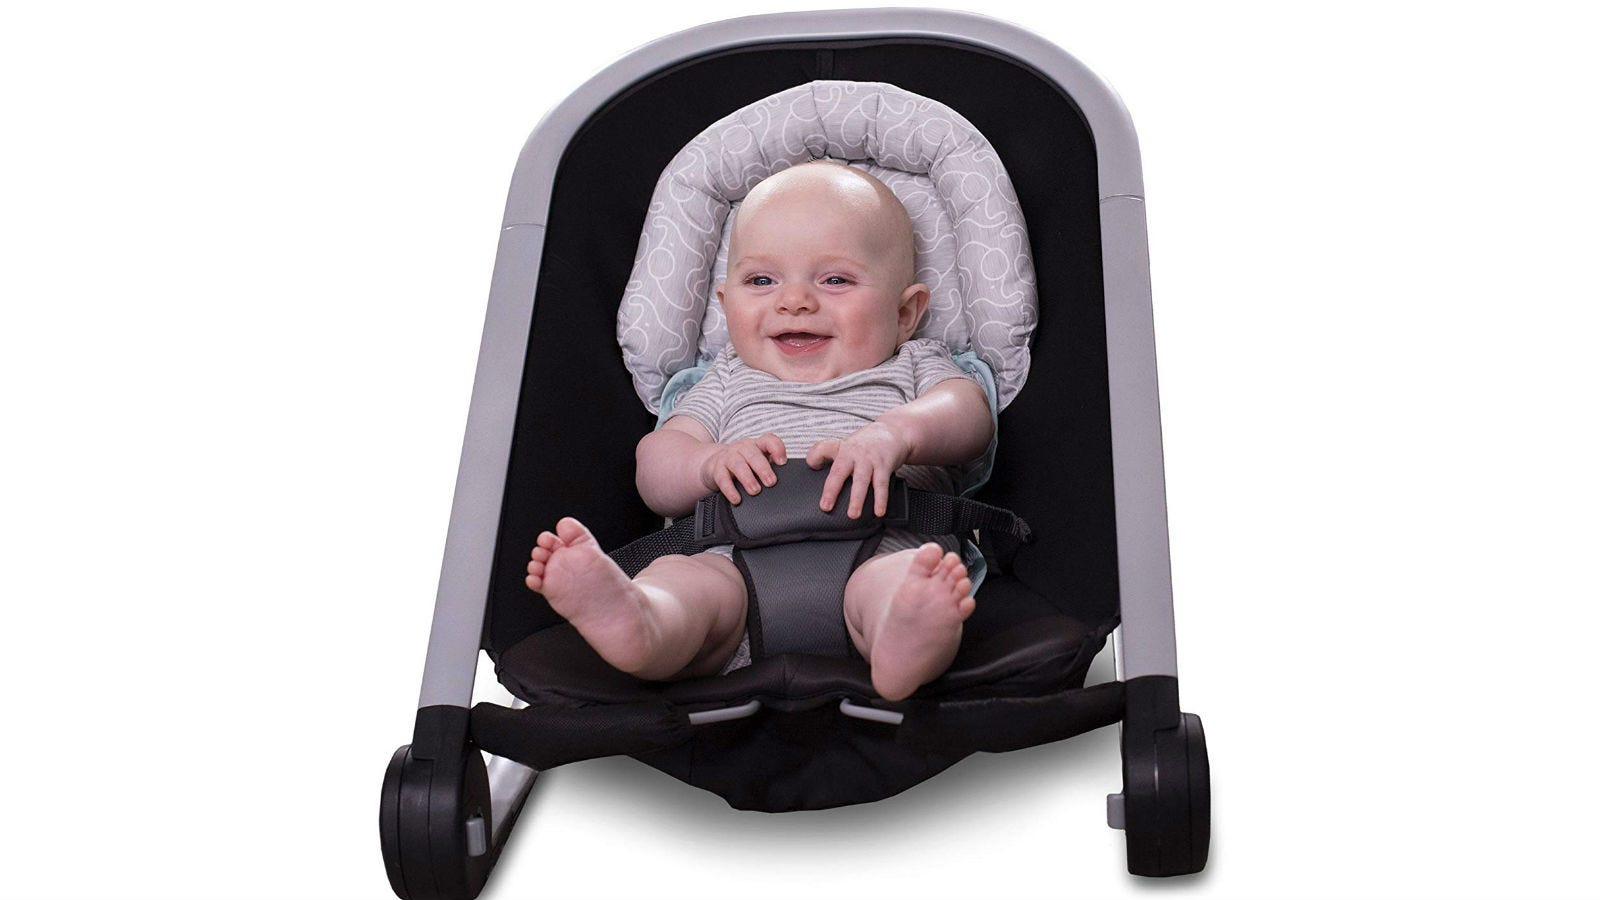 A baby in a detached stroller seat resting his head on the Boppy Noggin Nest Head Support.